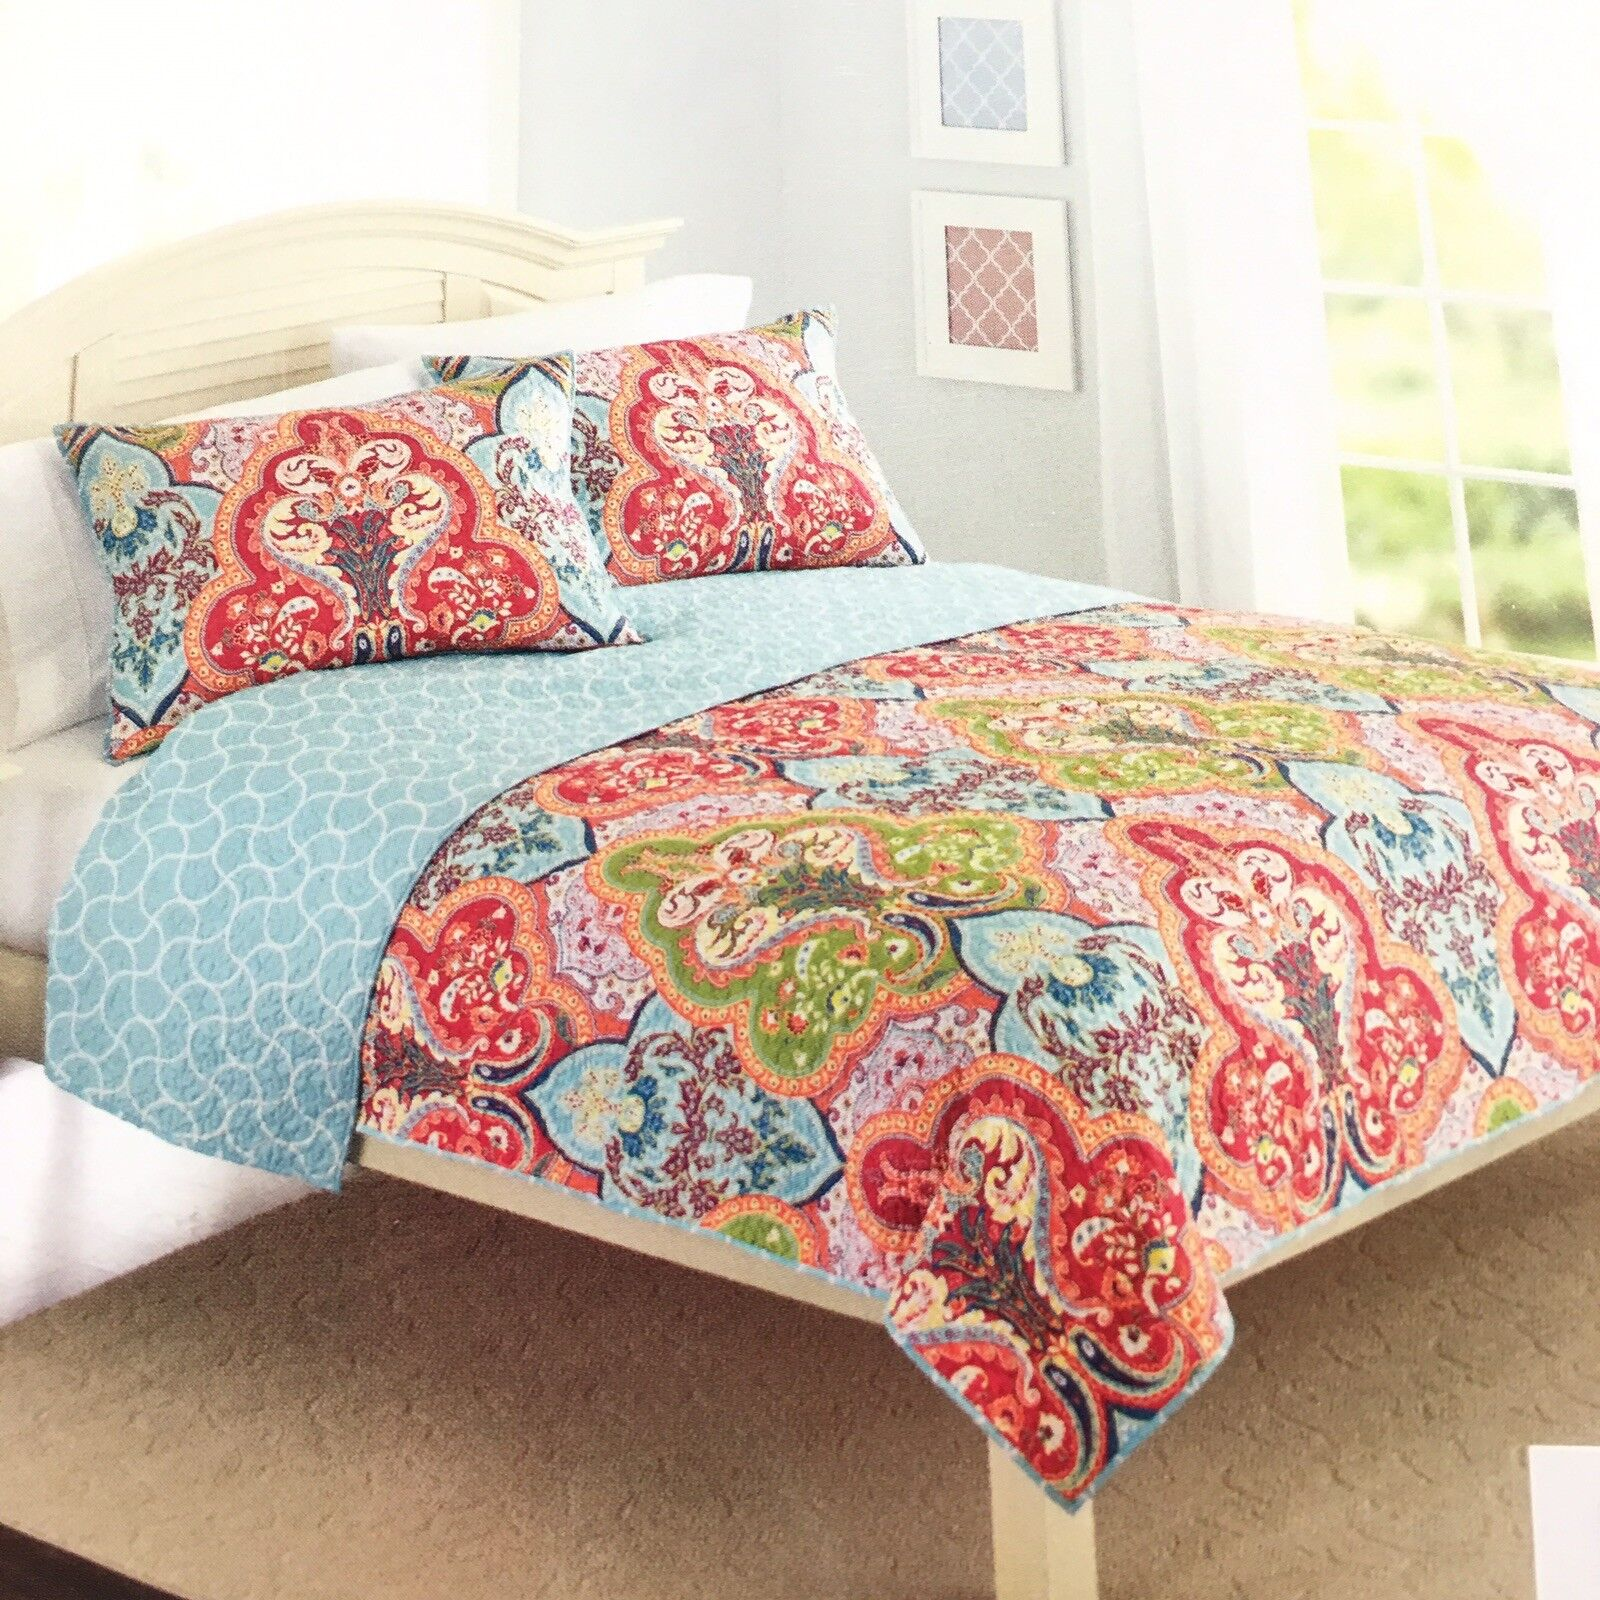 Better Homes and Gardens Quilt Collection, Jeweled Damask Größe  Full   Queen